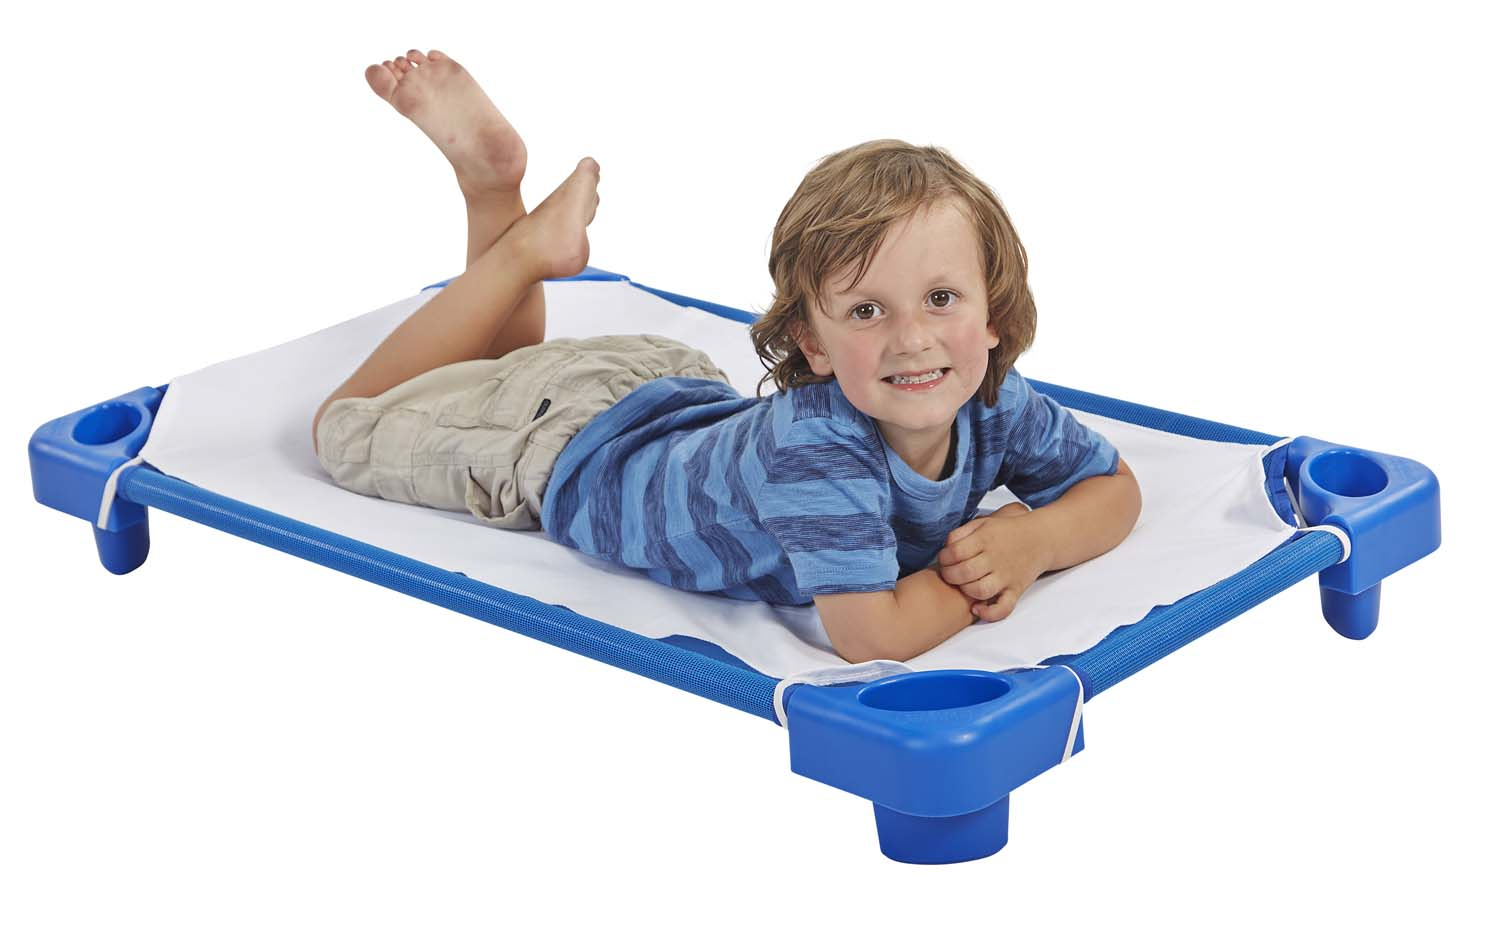 Dropship Home Decor Offex Stackable Standard Kiddie Nap Plastic Cot For Kids